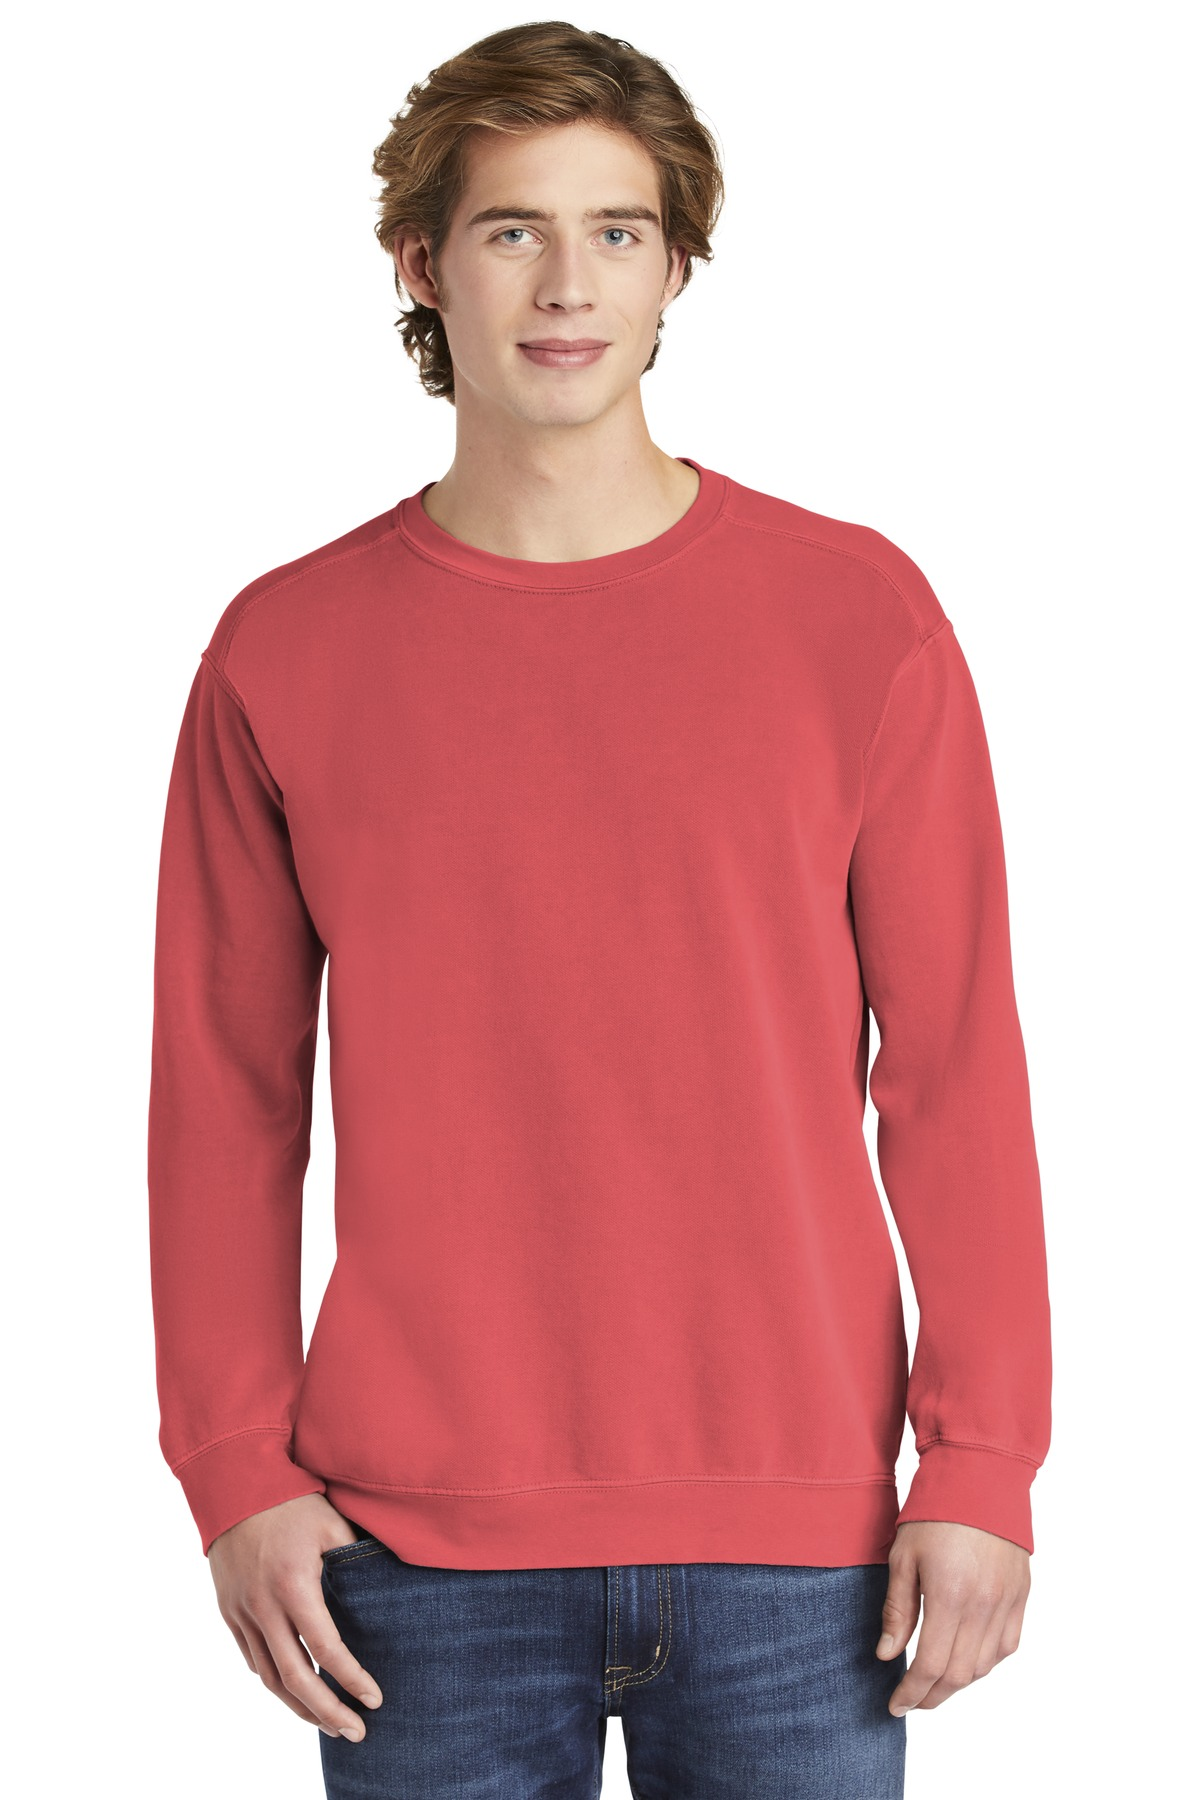 COMFORT COLORS  ®  Ring Spun Crewneck Sweatshirt. 1566 - Watermelon